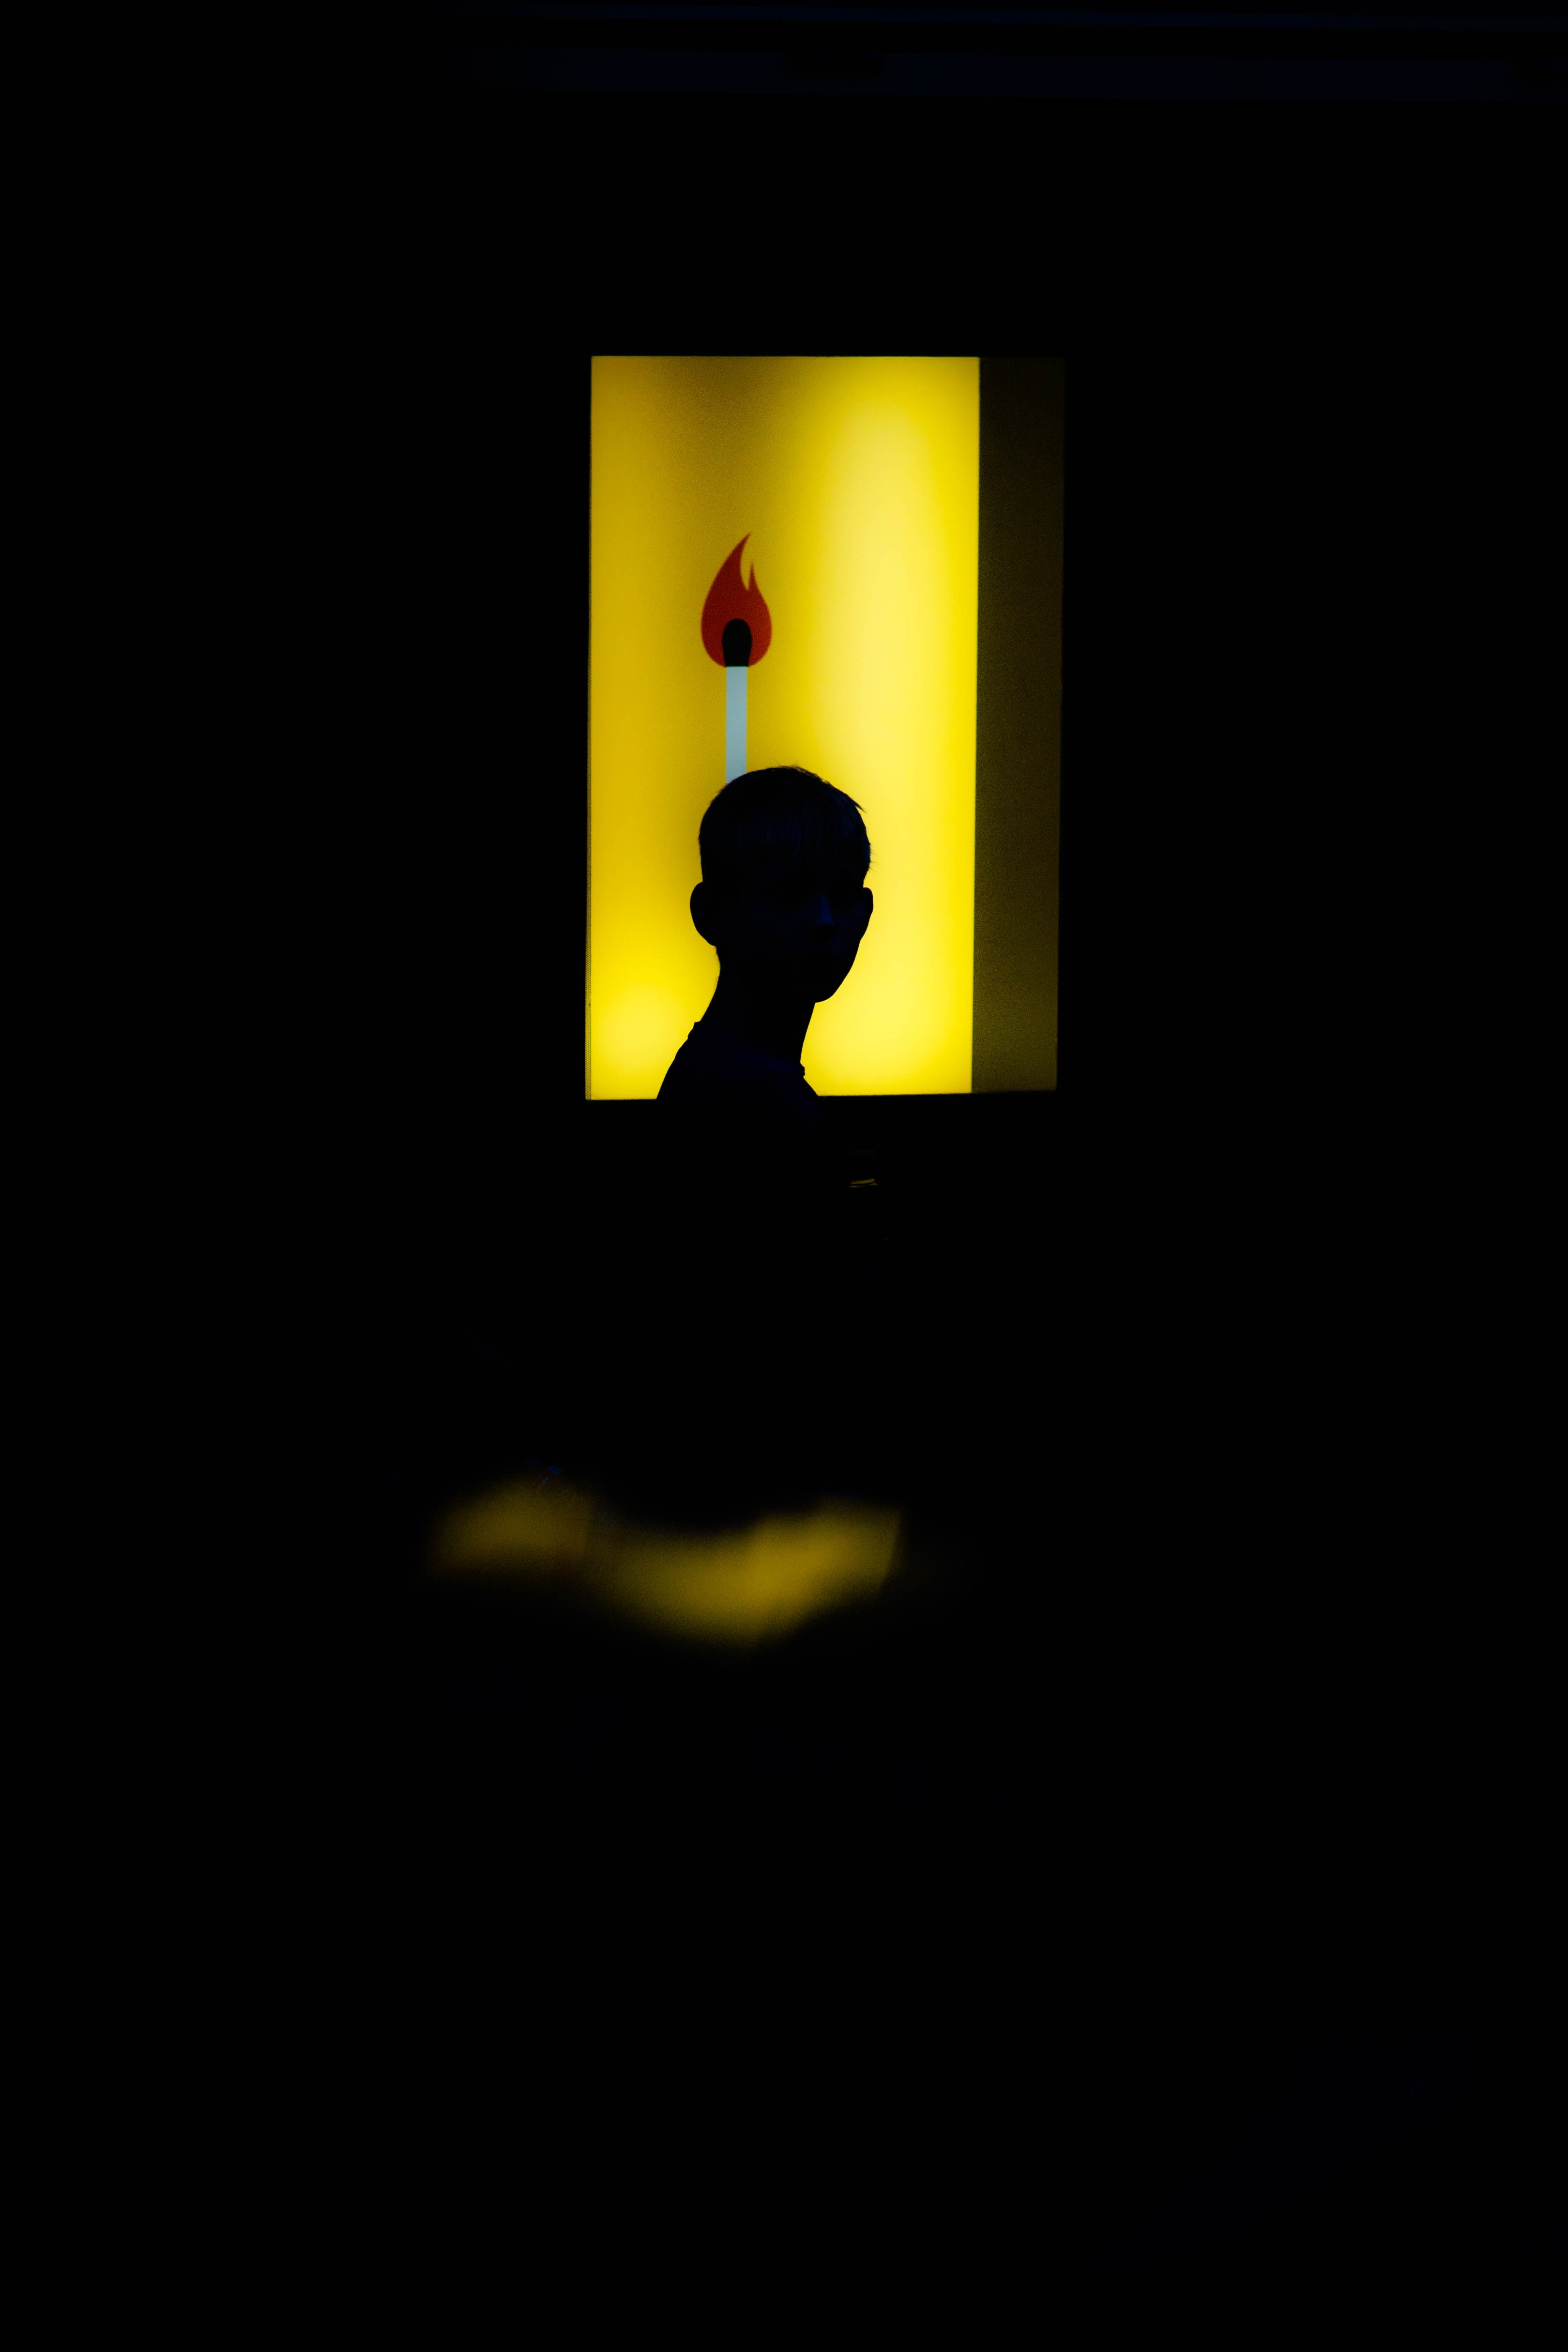 silhouette of human toward with lighted room photography